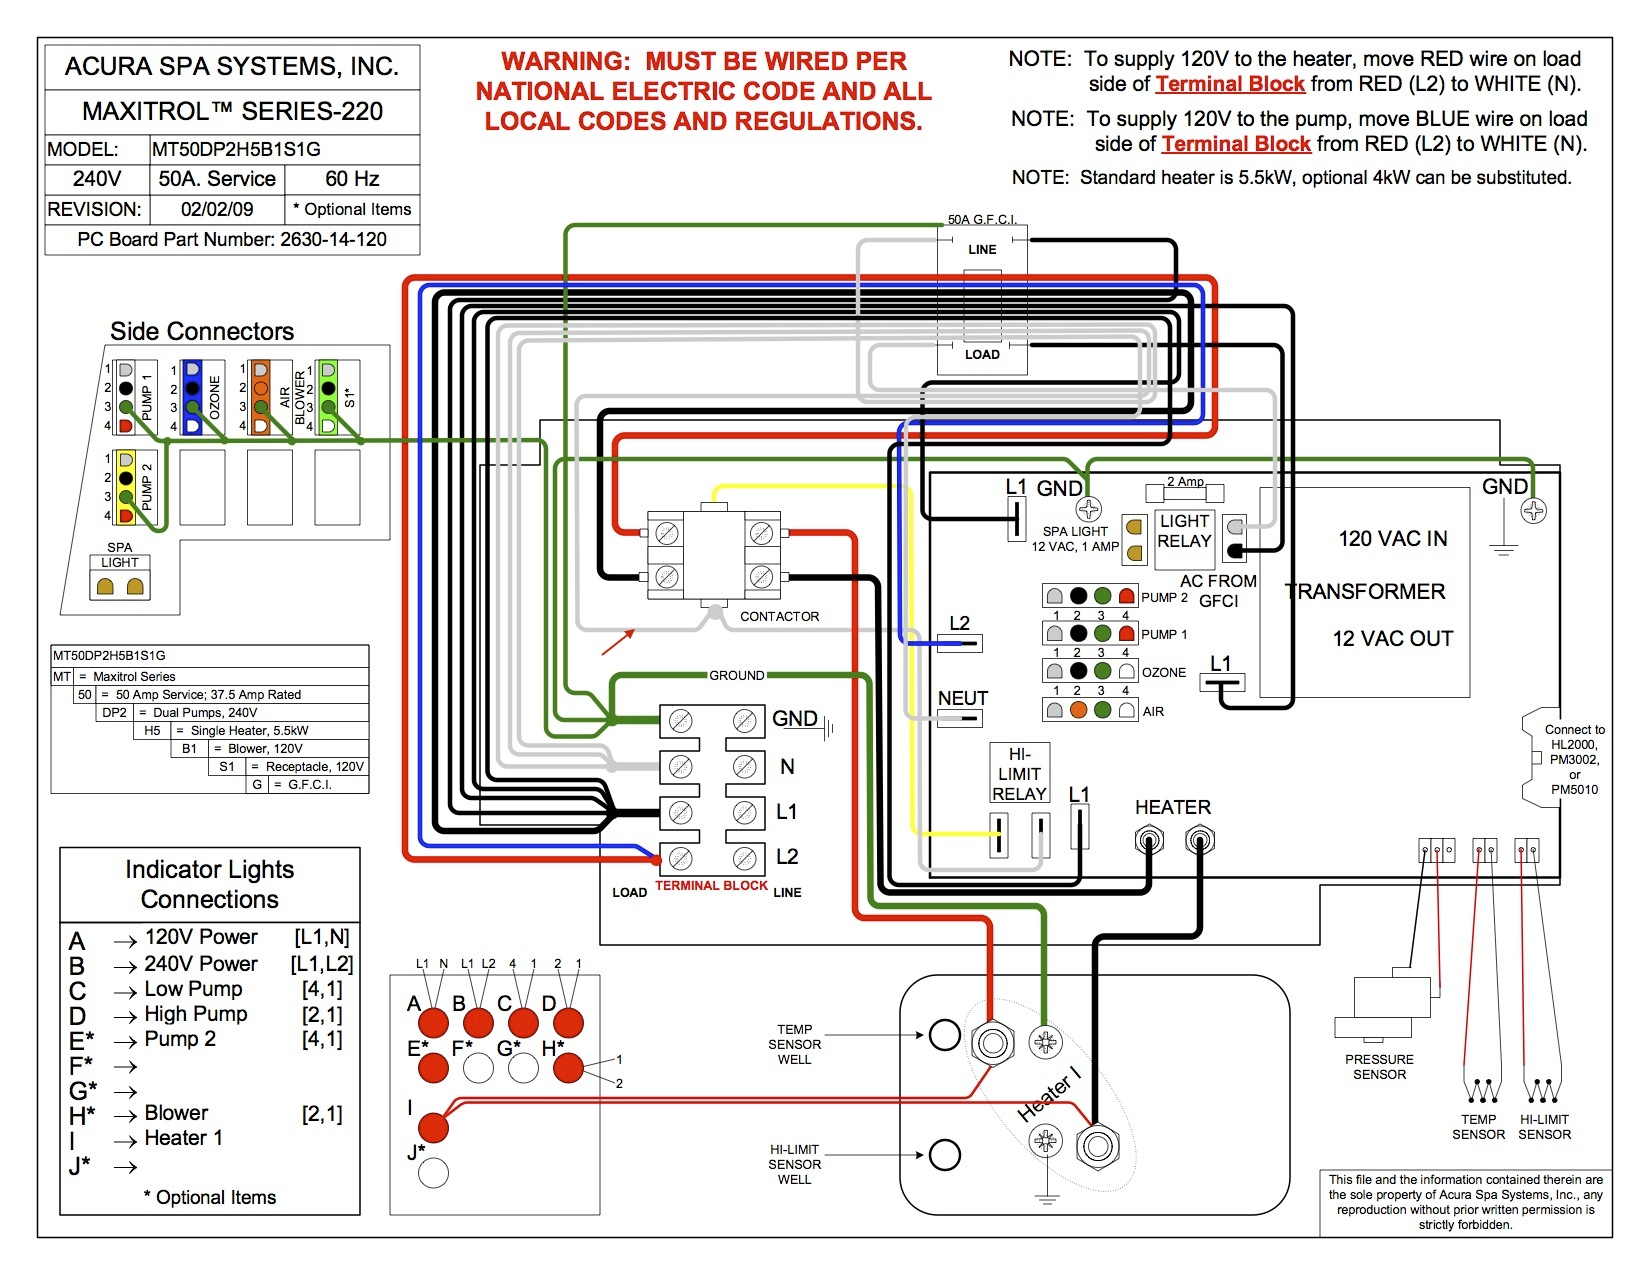 Wiring Diagram For A Hot Tub Pump : Nordic hot tub wiring diagrams lg diagram